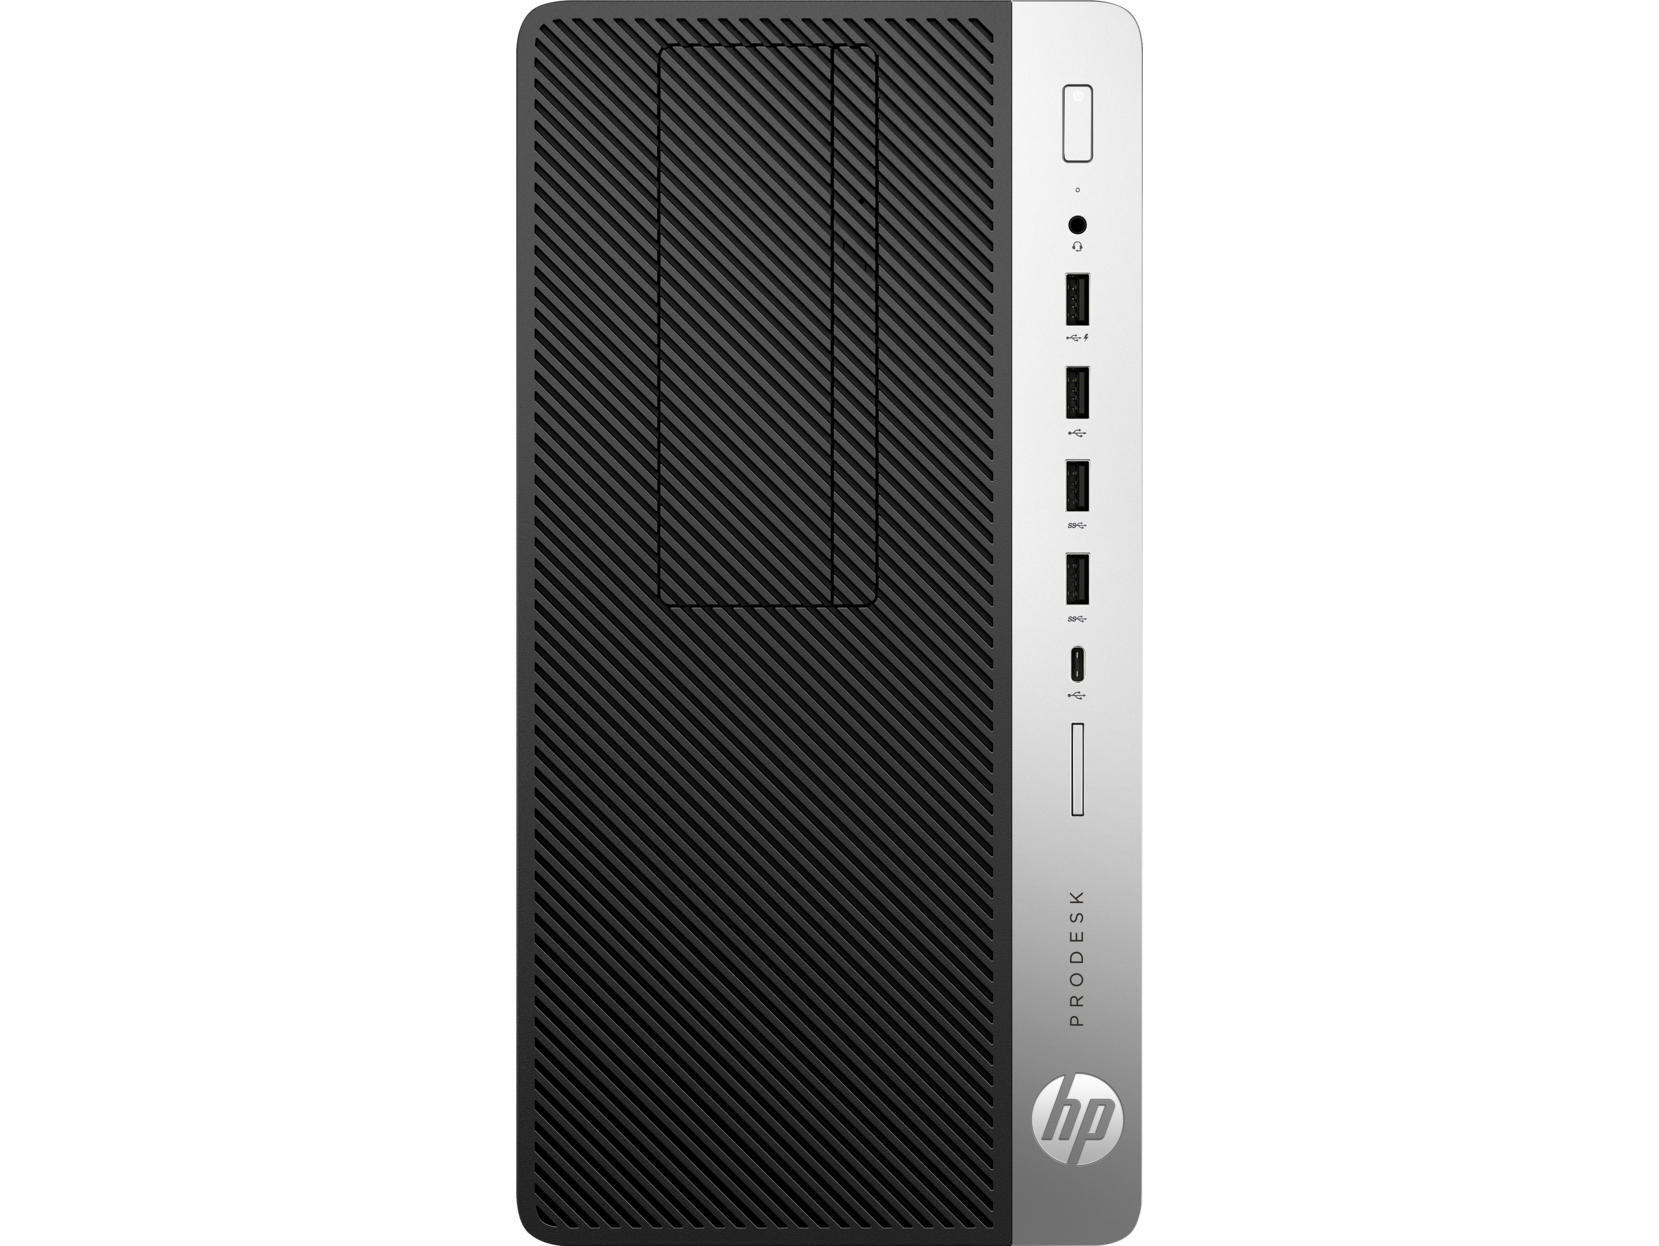 HP ProDesk 600 G3 Microtower PC